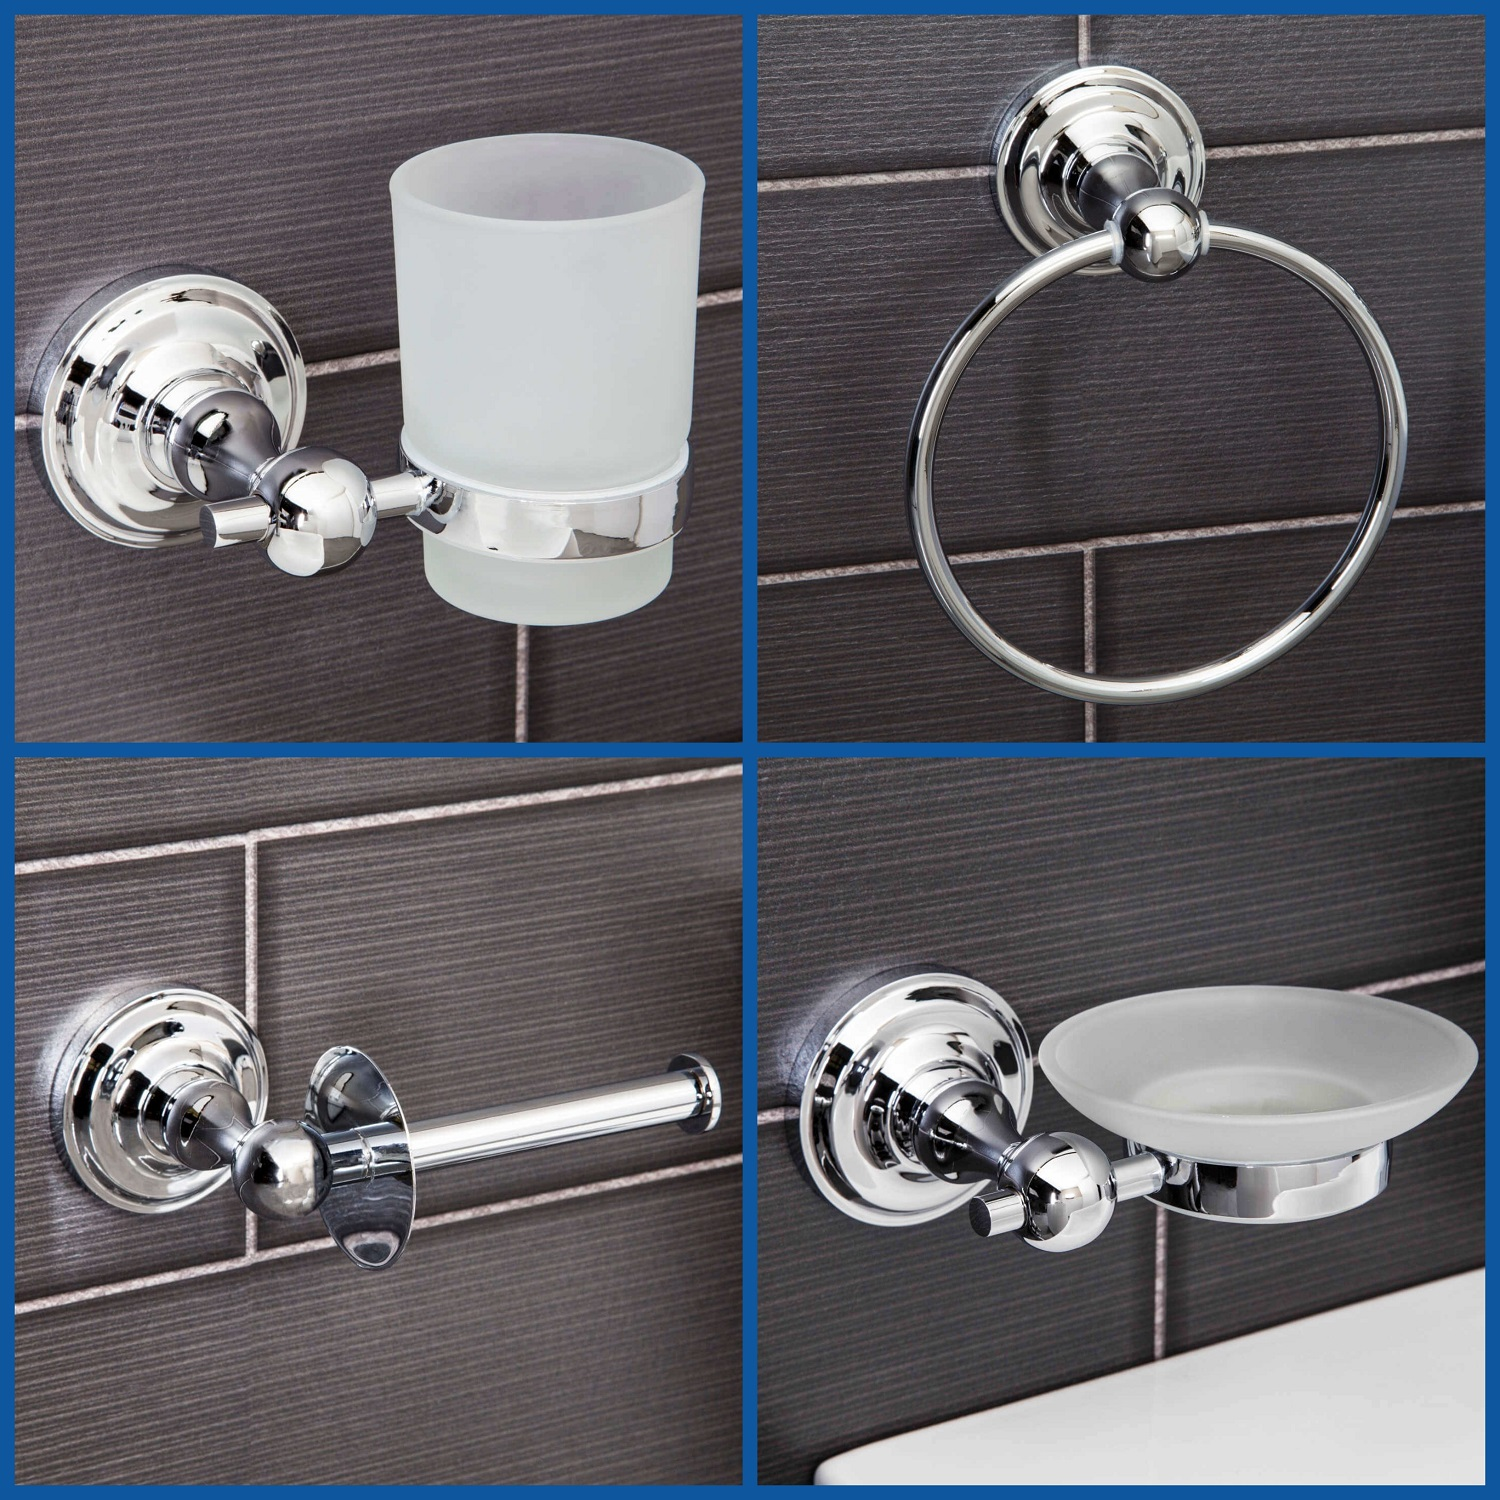 Bathroom Accessories.Details About Traditional Bathroom Accessories Set Toilet Paper Holder Towel Ring Soap Dish